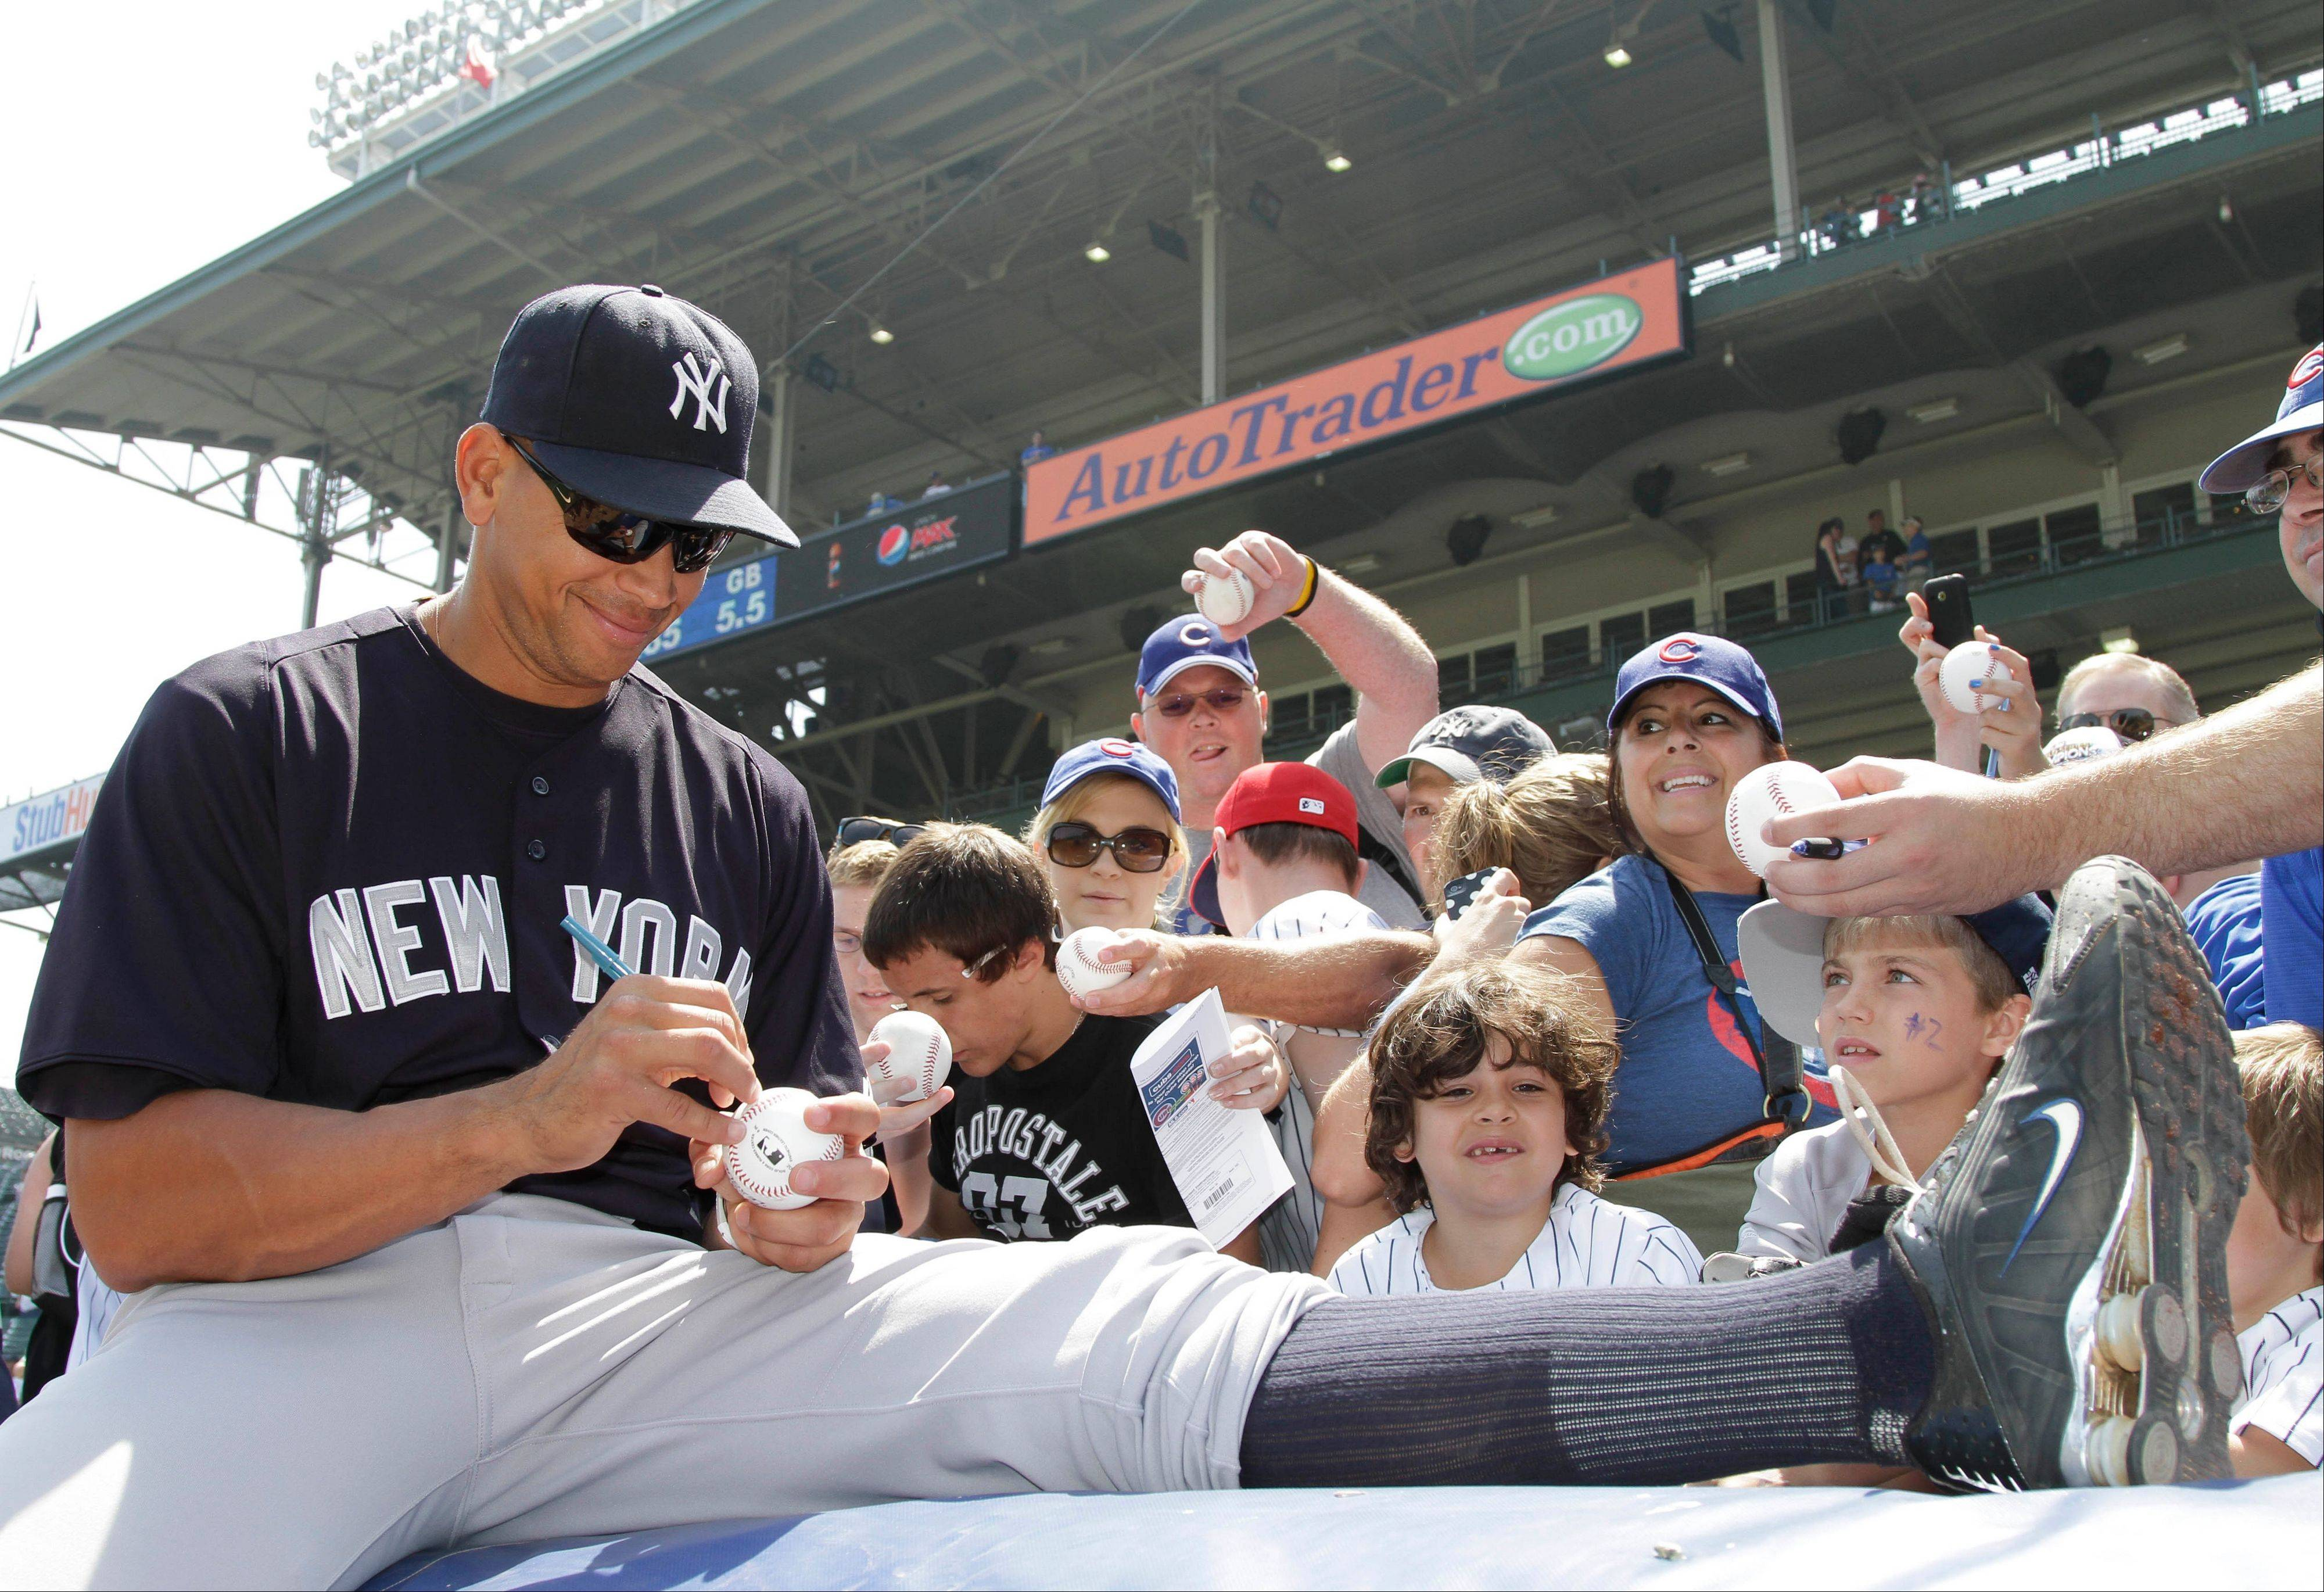 New York Yankees third baseman Alex Rodriguez signs autographs for fans before an interleague baseball game against the Chicago Cubs in Chicago, Friday, June 17, 2011.